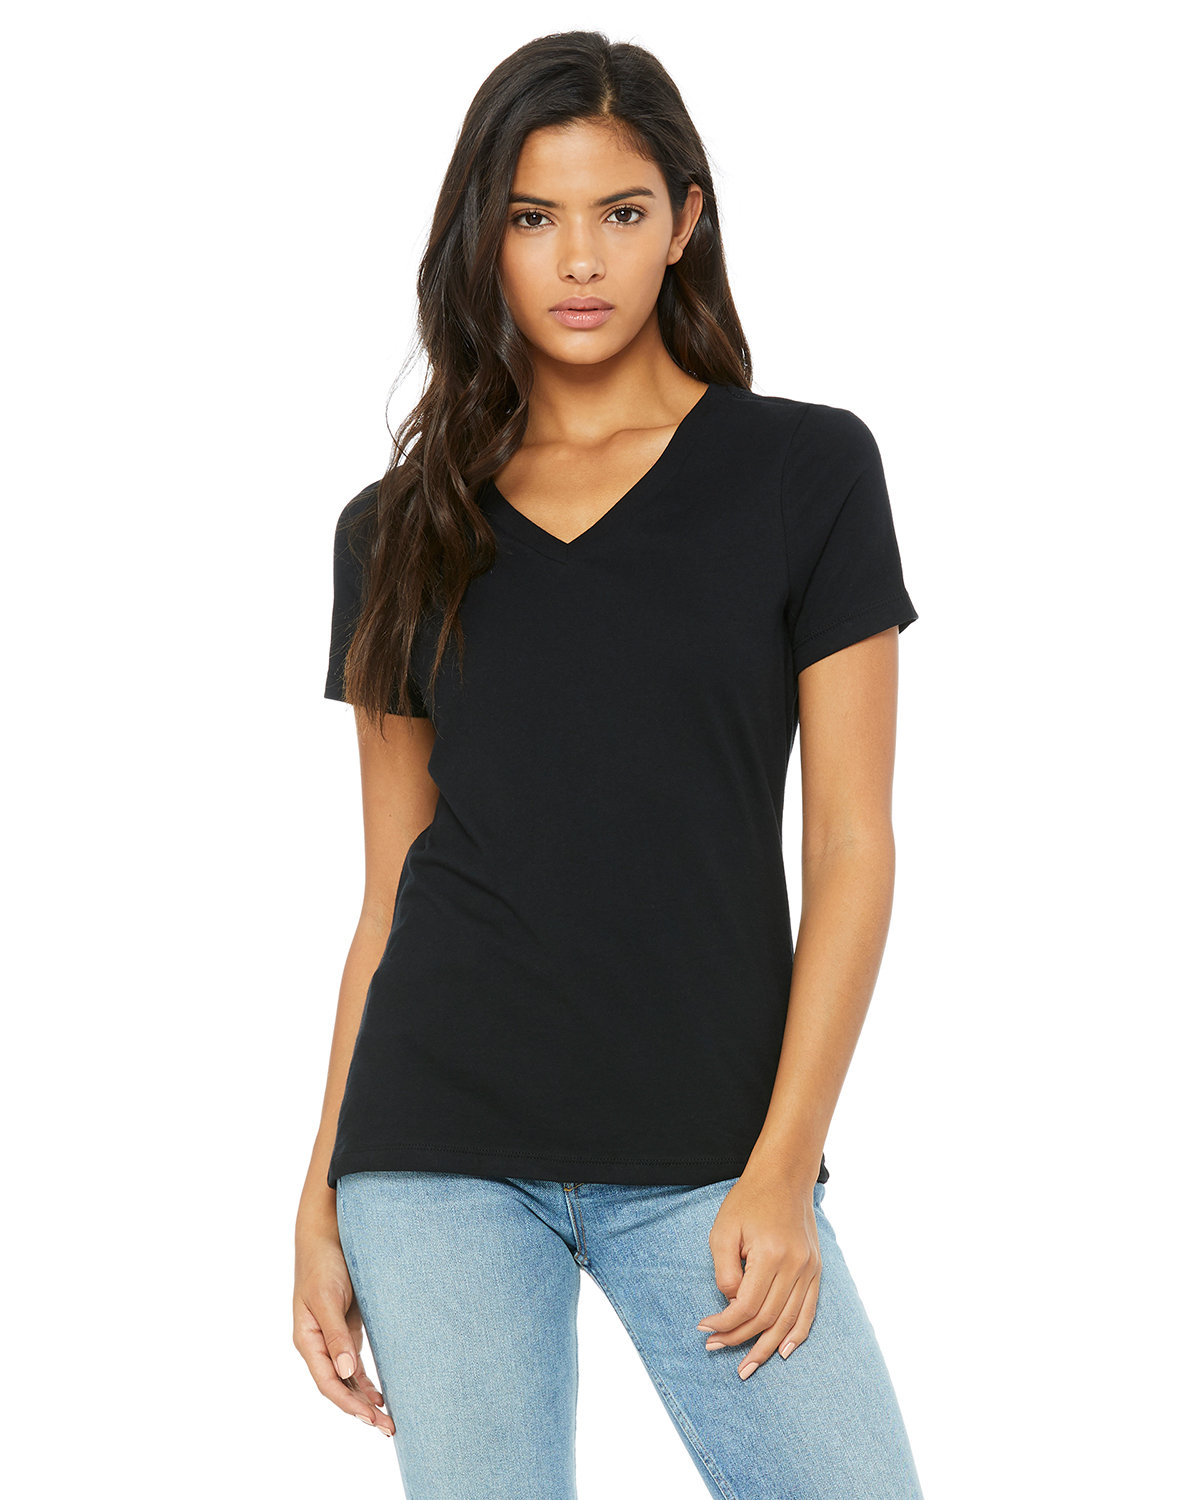 Bella + Canvas Ladies' Relaxed Jersey V-Neck T-Shirt BLACK